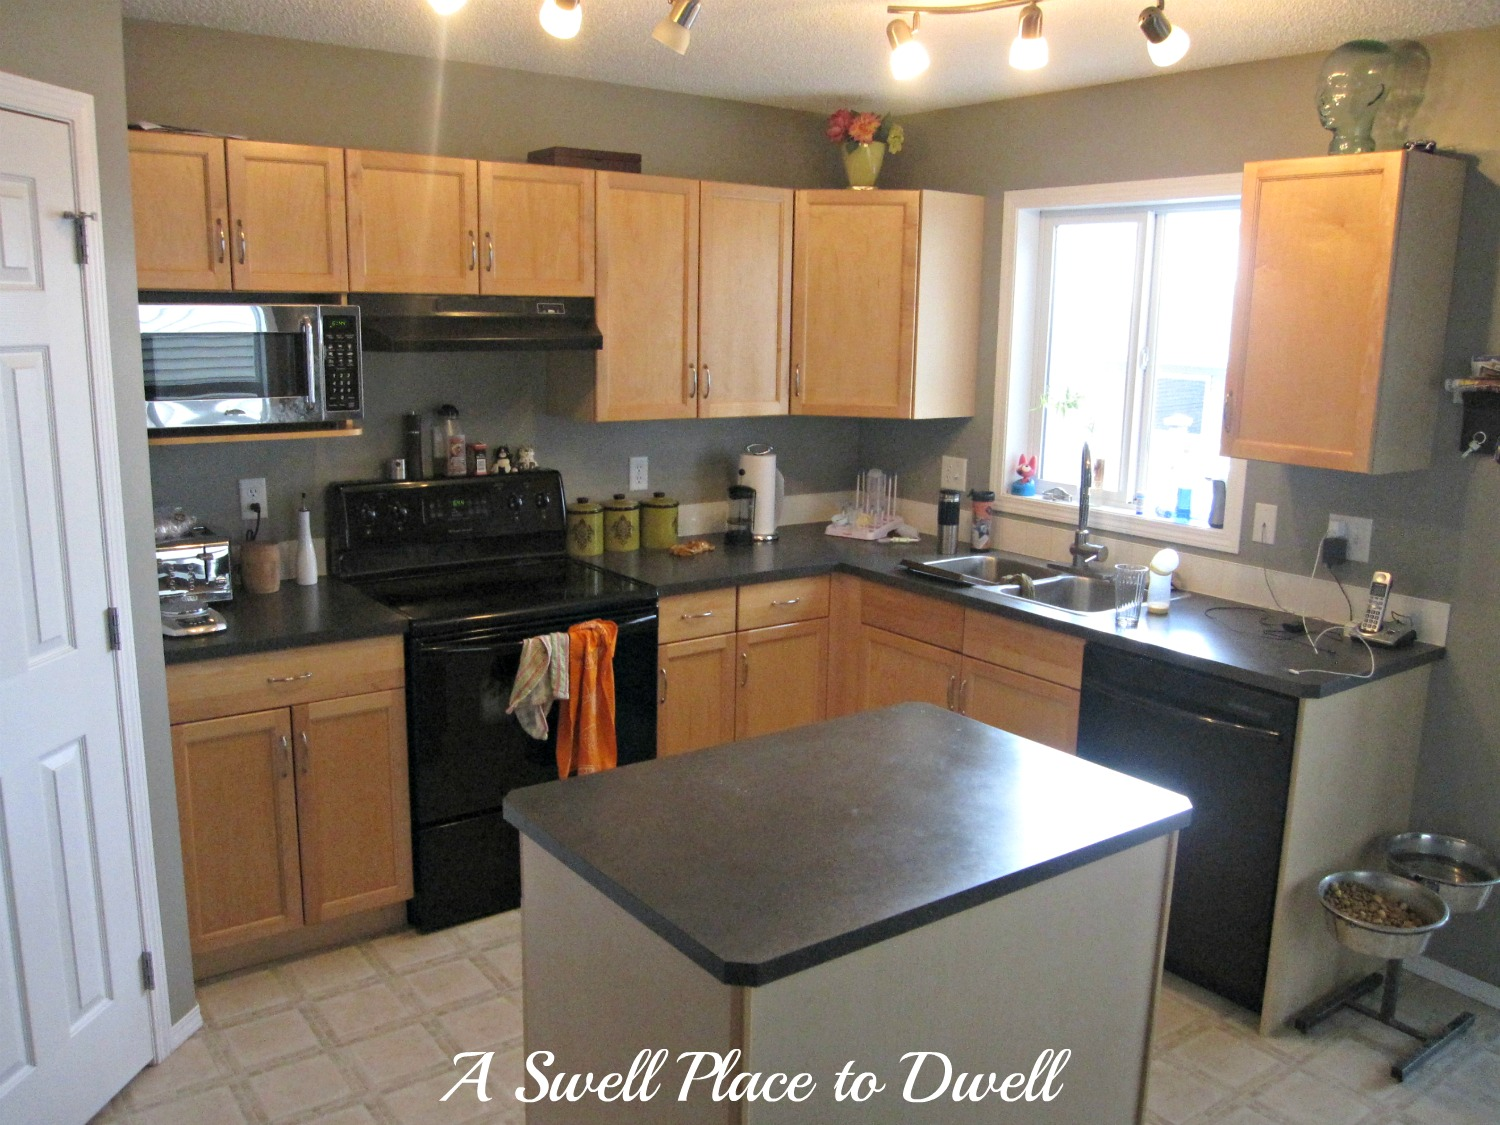 A swell place to dwell how to paint kitchen cabinets how to paint kitchen cabinets kitchenmakeover budget paint dailygadgetfo Images